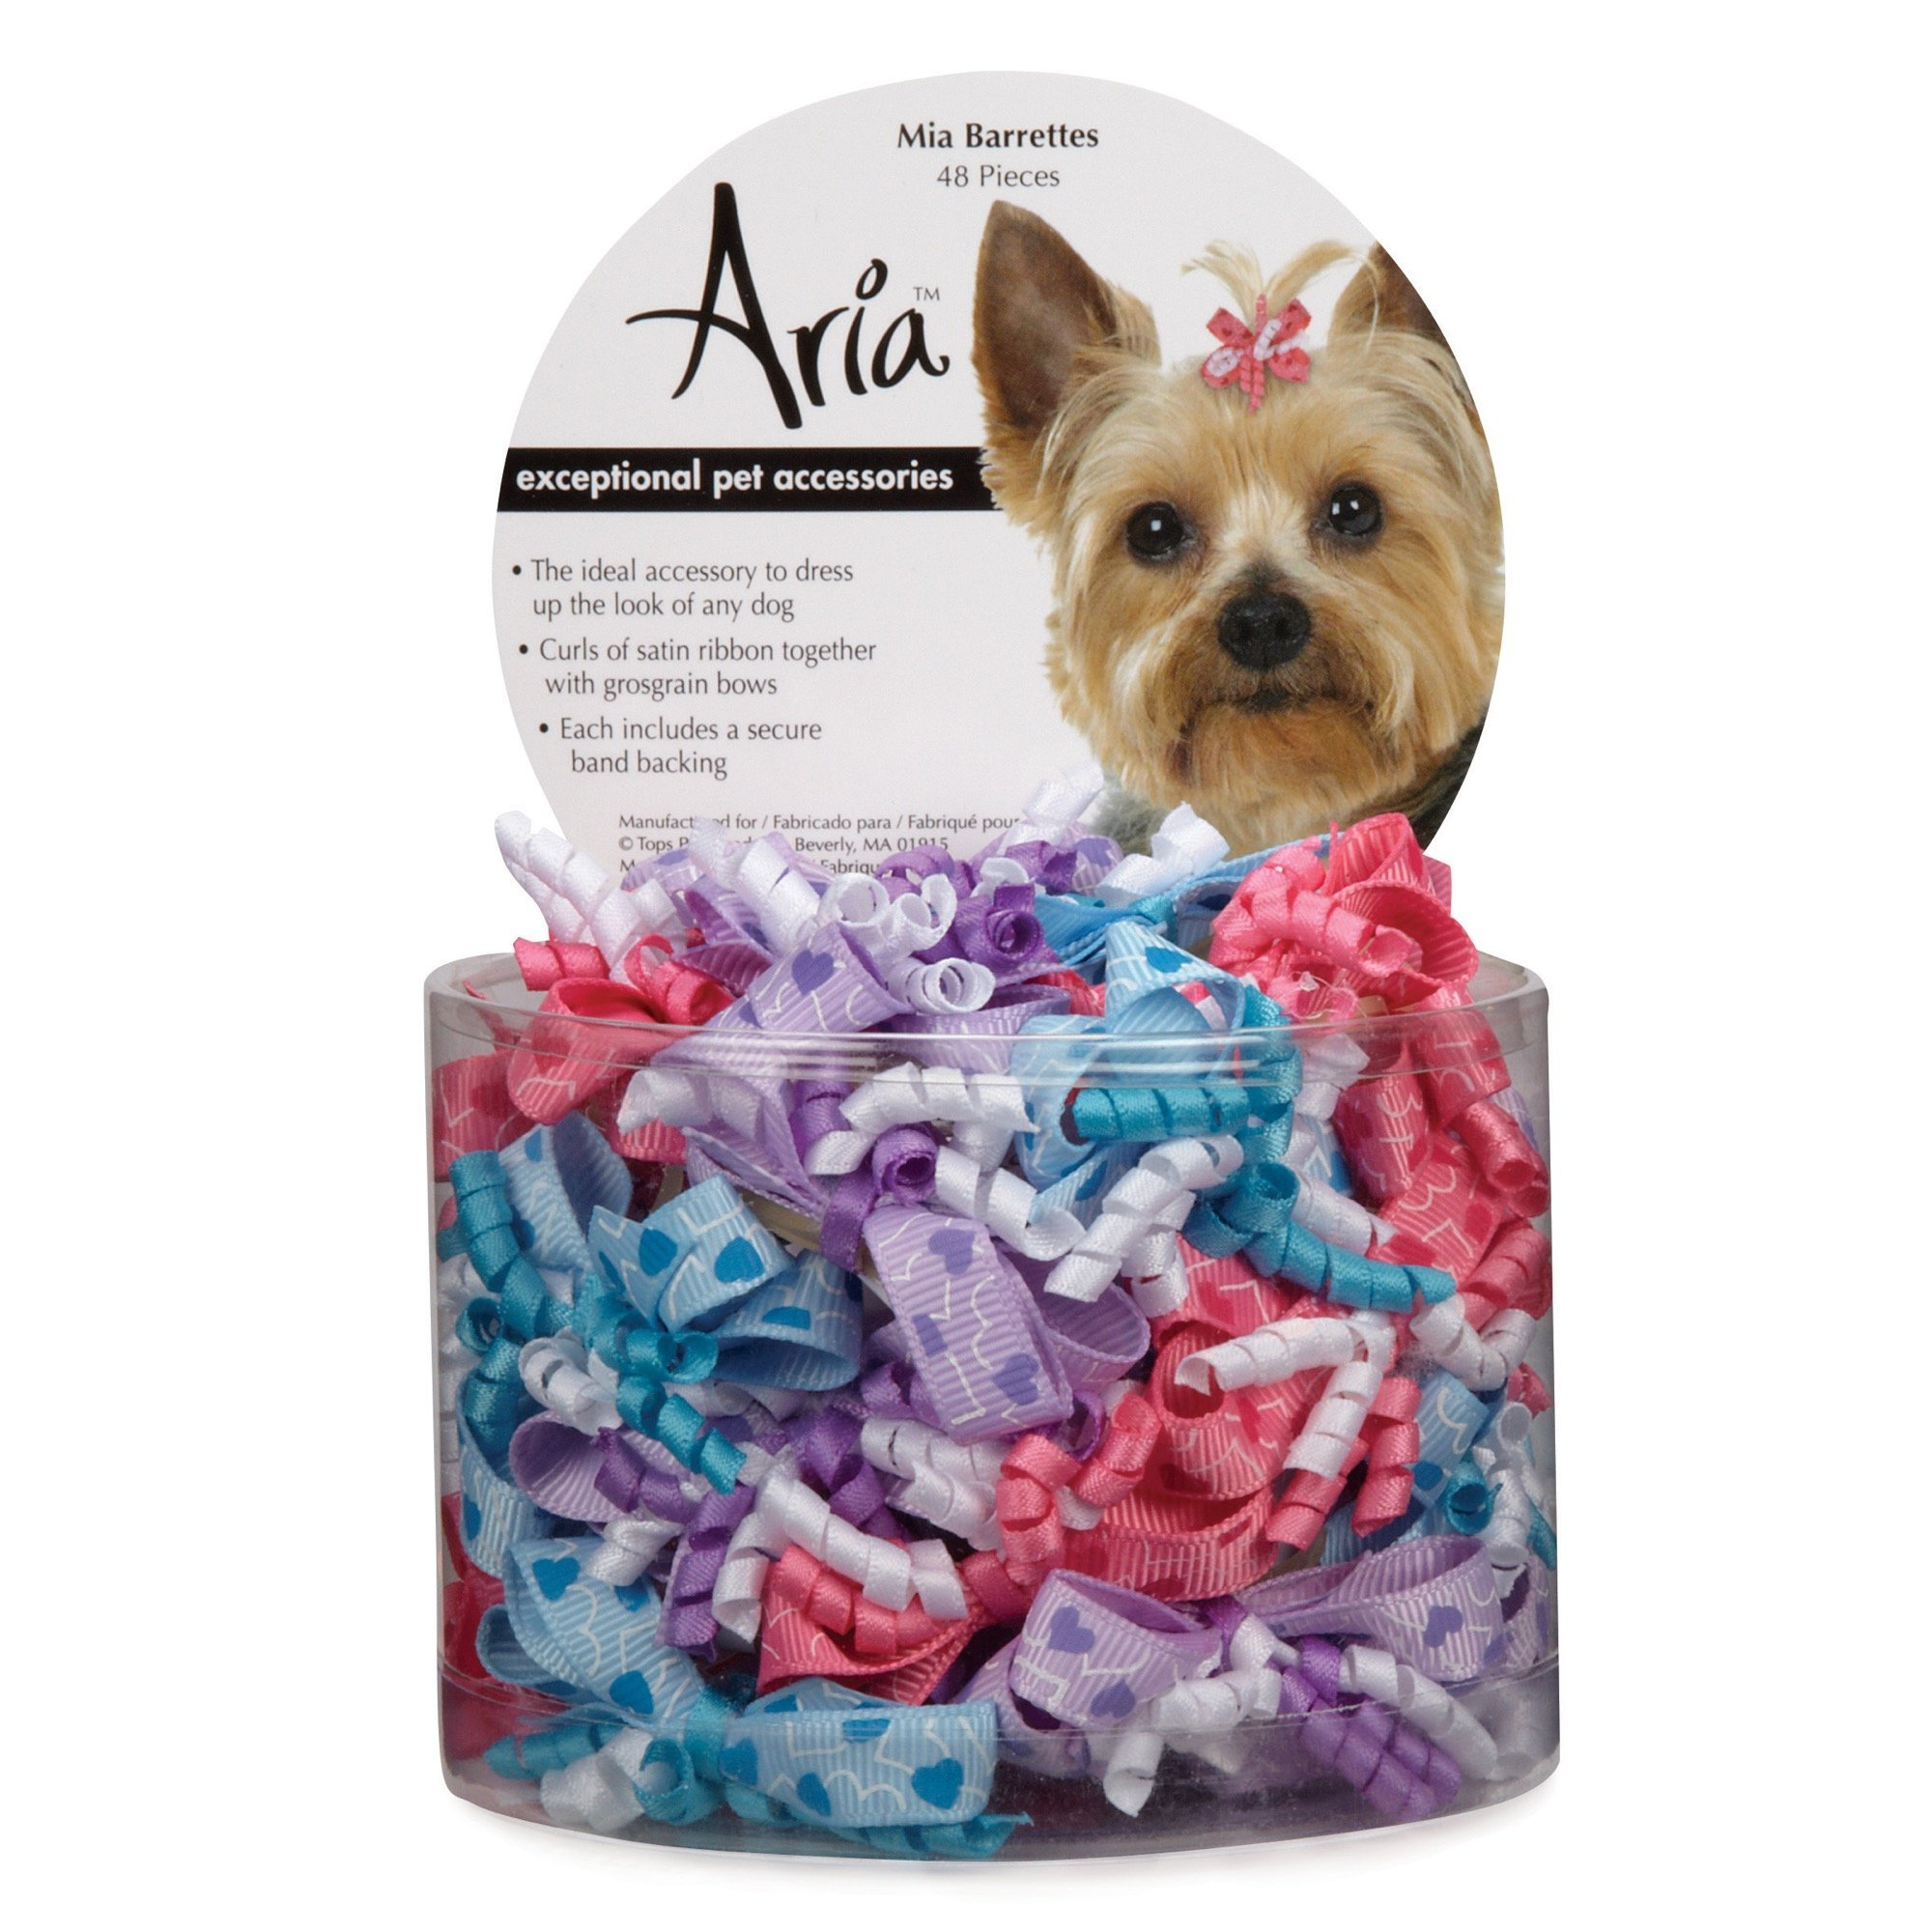 Aria Mia Ribbon Barrettes for Dogs, 48-Piece Canisters